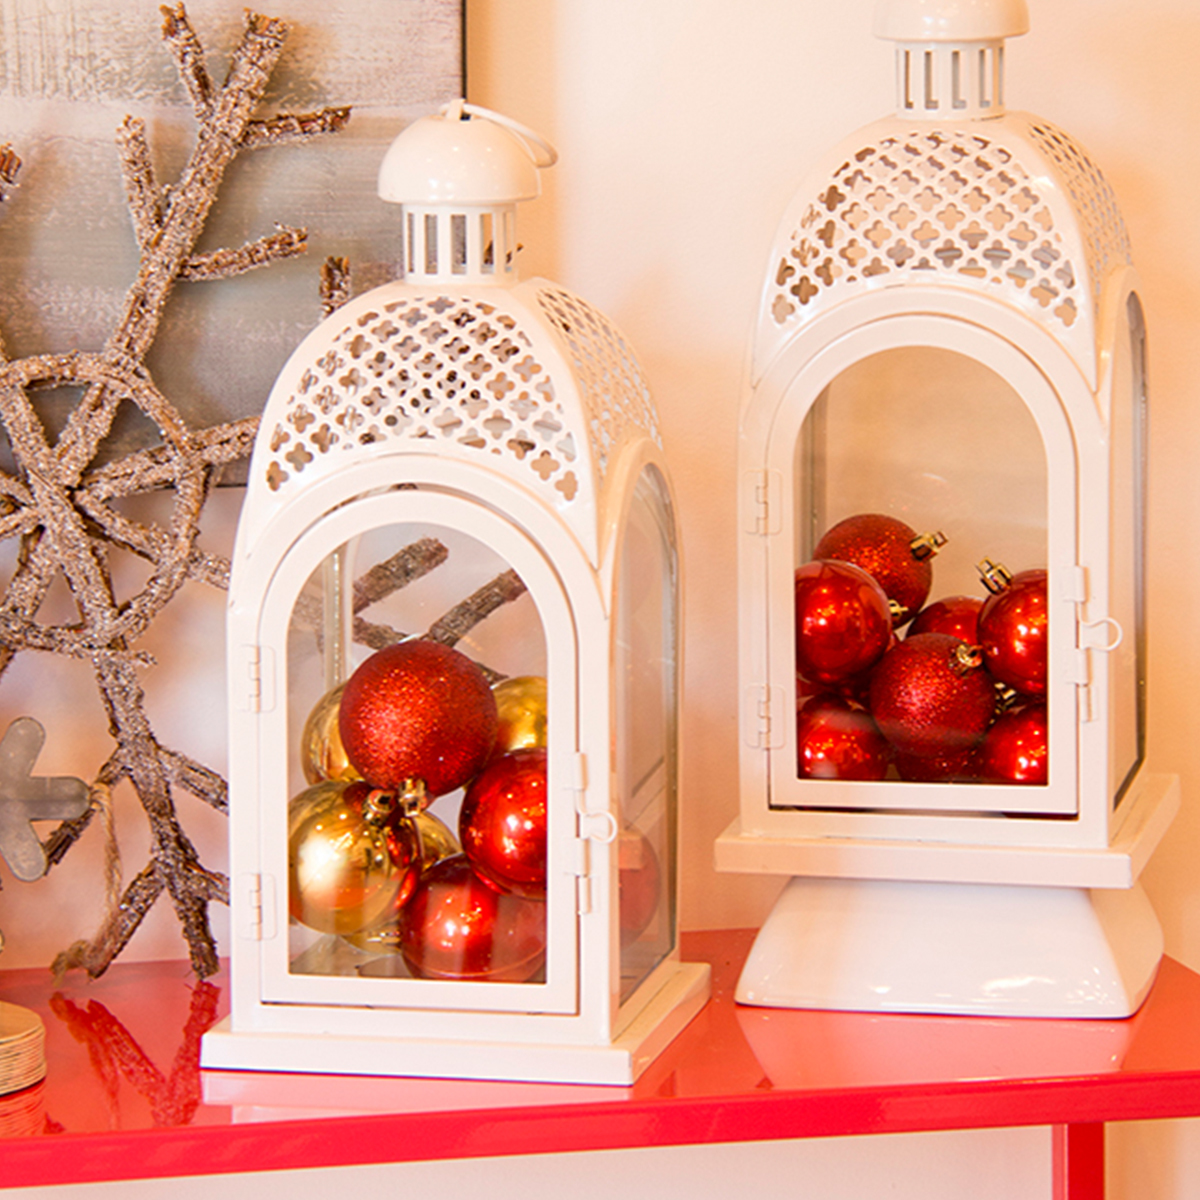 Better Homes & Gardens white lanterns with red and gold Christmas ornaments in them photo